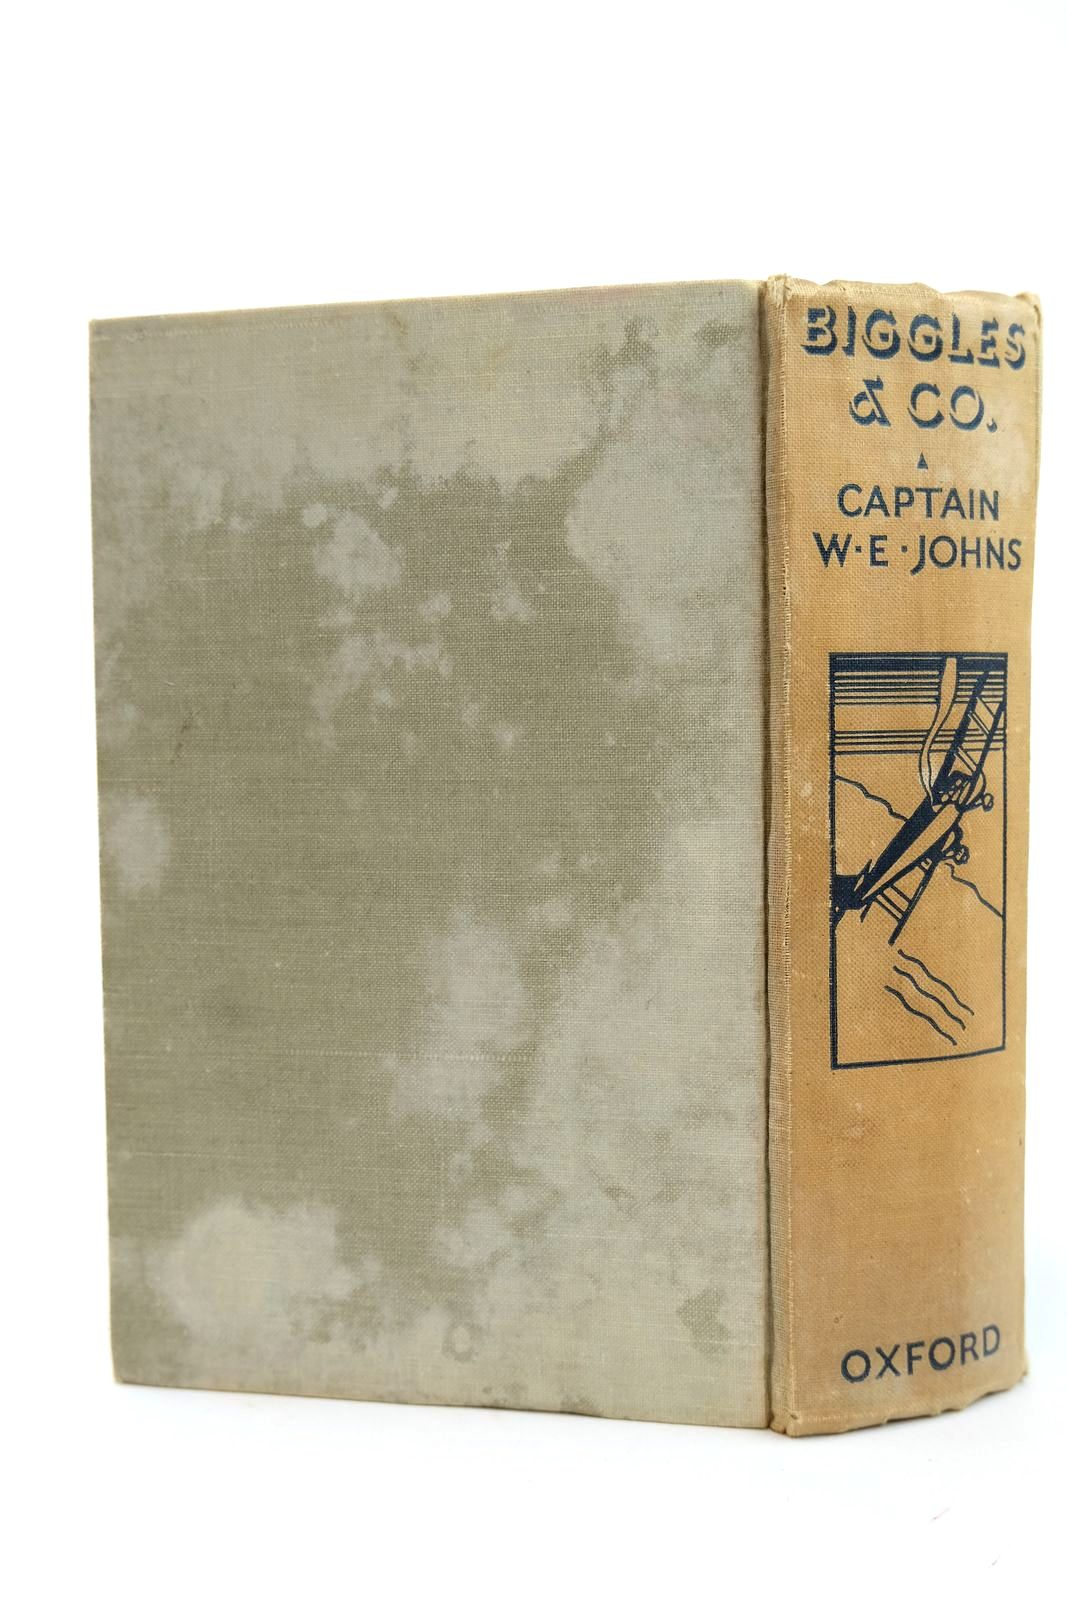 Photo of BIGGLES & CO. written by Johns, W.E. illustrated by Leigh, Howard Sindall, Alfred published by Oxford University Press, Humphrey Milford (STOCK CODE: 2131857)  for sale by Stella & Rose's Books